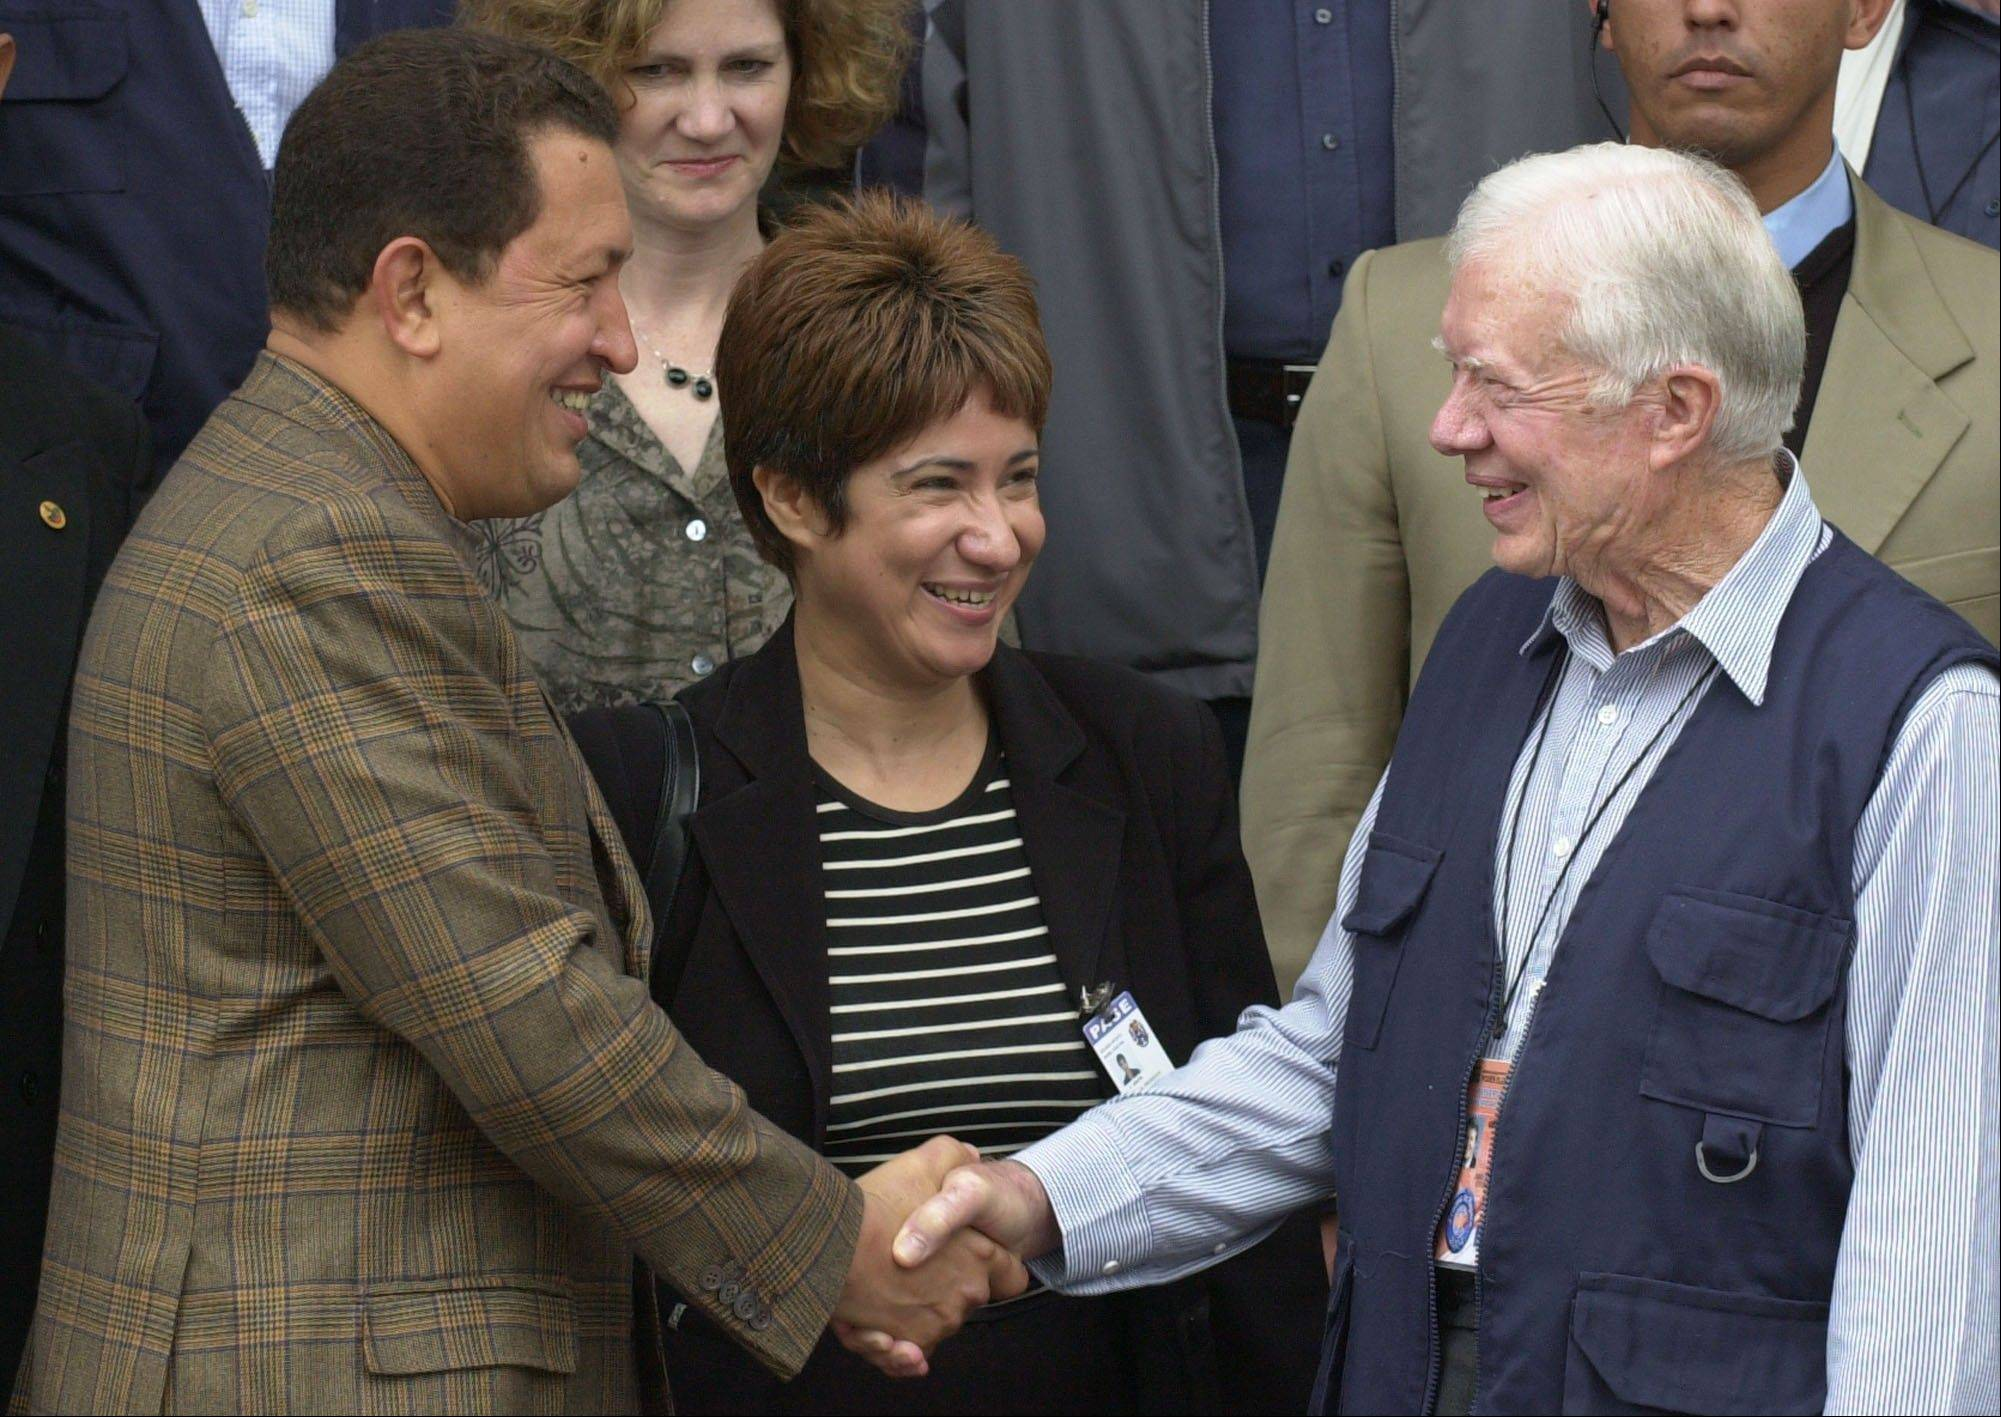 In this May 30, 2004 file photo, Venezuela's President Hugo Chavez, left, shakes hands with former U.S. President Jimmy Carter at Miraflores presidential palace palace in Caracas, Venezuela.